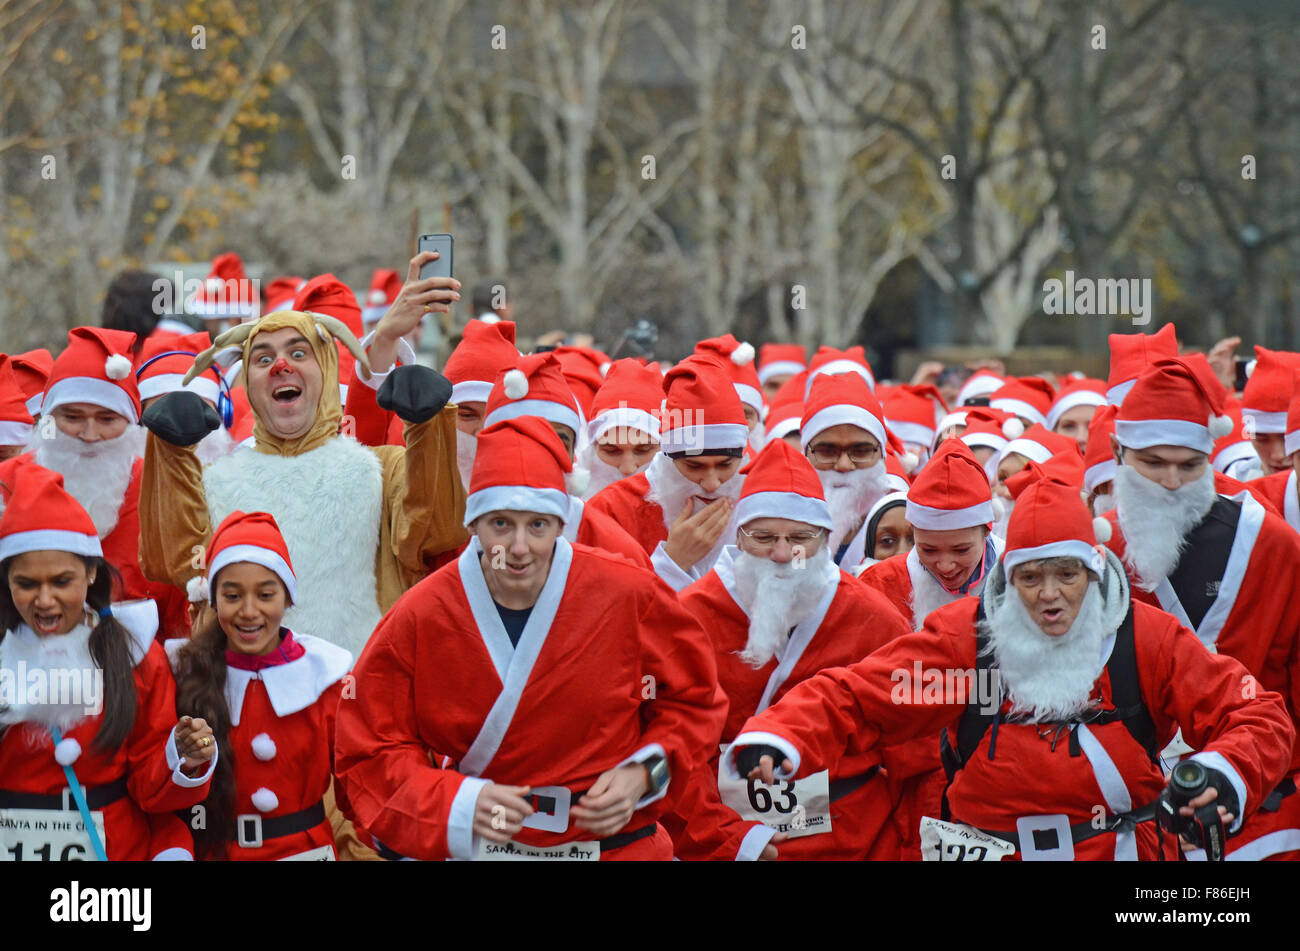 santa-in-the-city-is-one-of-londons-newest-santa-runs-with-its-start-F86EJH.jpg